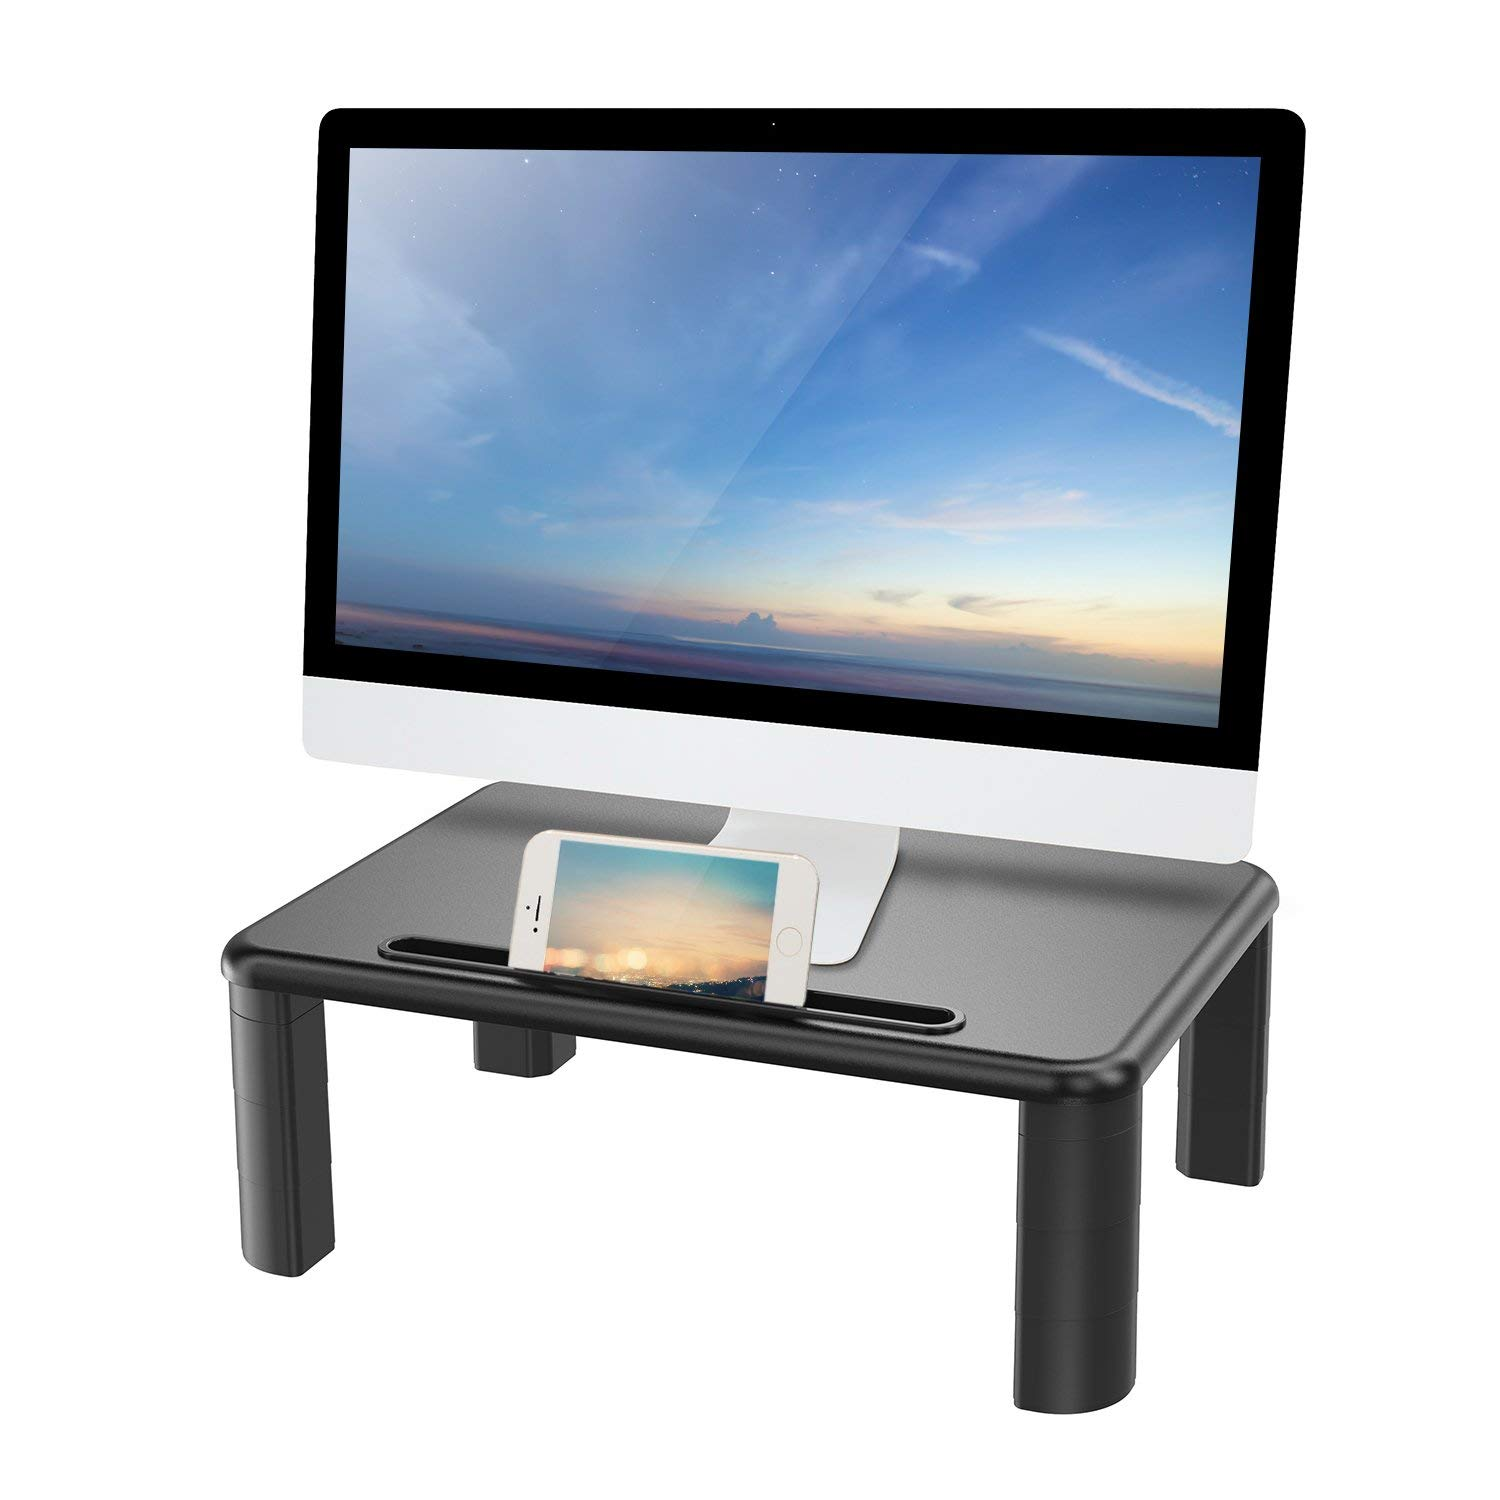 HUANUO Monitor Stand Riser with Adjustable Height